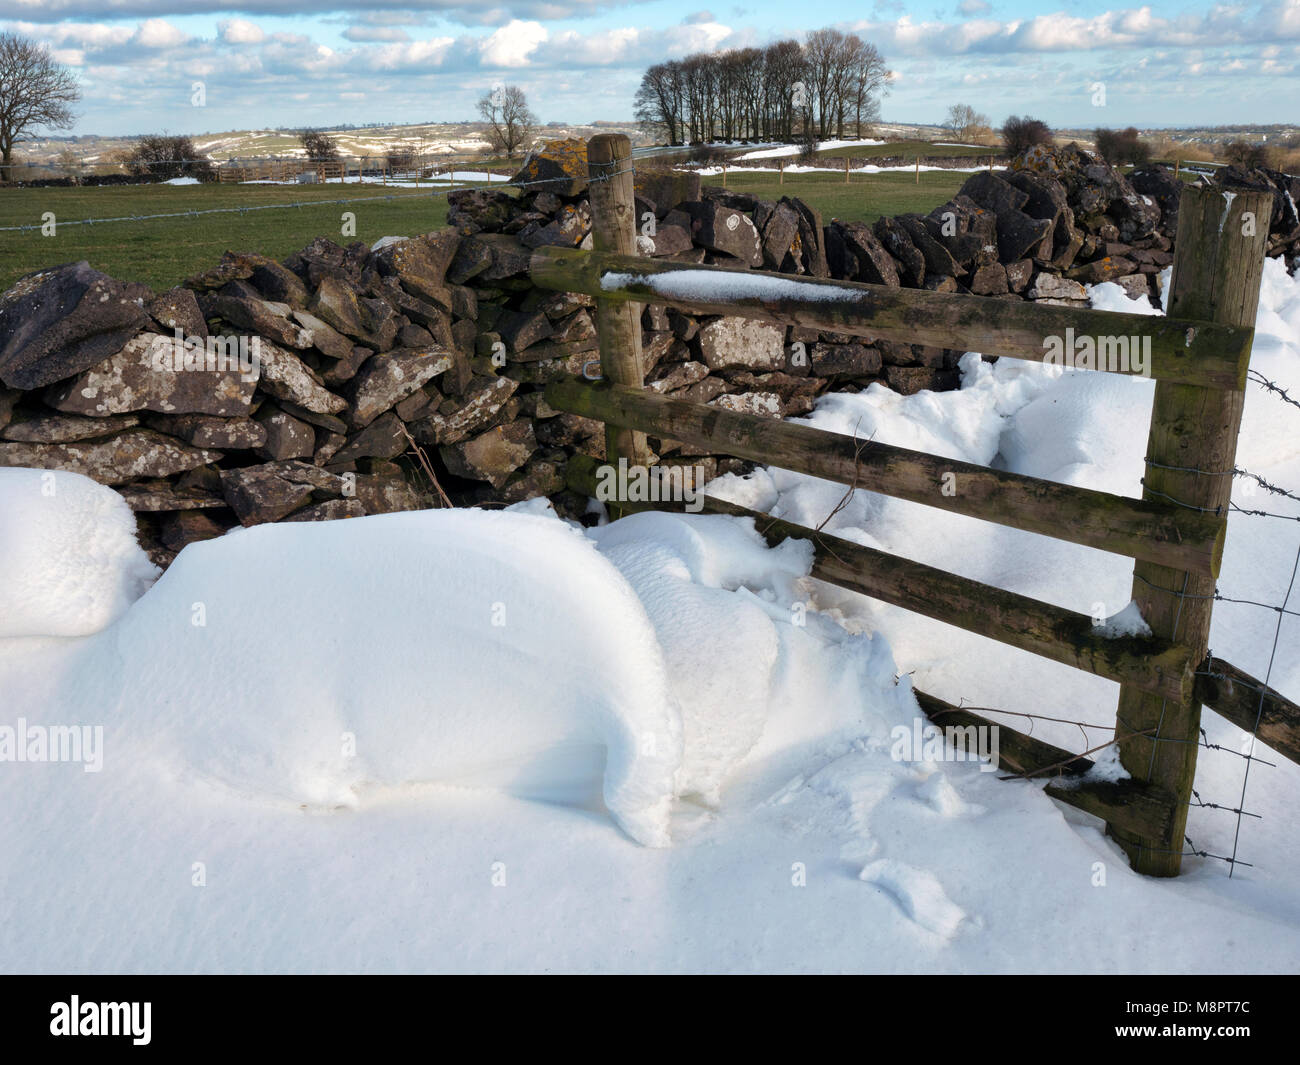 Tissington, Peak District National Park, Derbyshire, UK. 19th March, 2018. UK Weather: The last of the drifted snow as it melts near the village of Tissington in the Peak District National Park, Derbyshire, England, UK Credit: Doug Blane/Alamy Live News Stock Photo